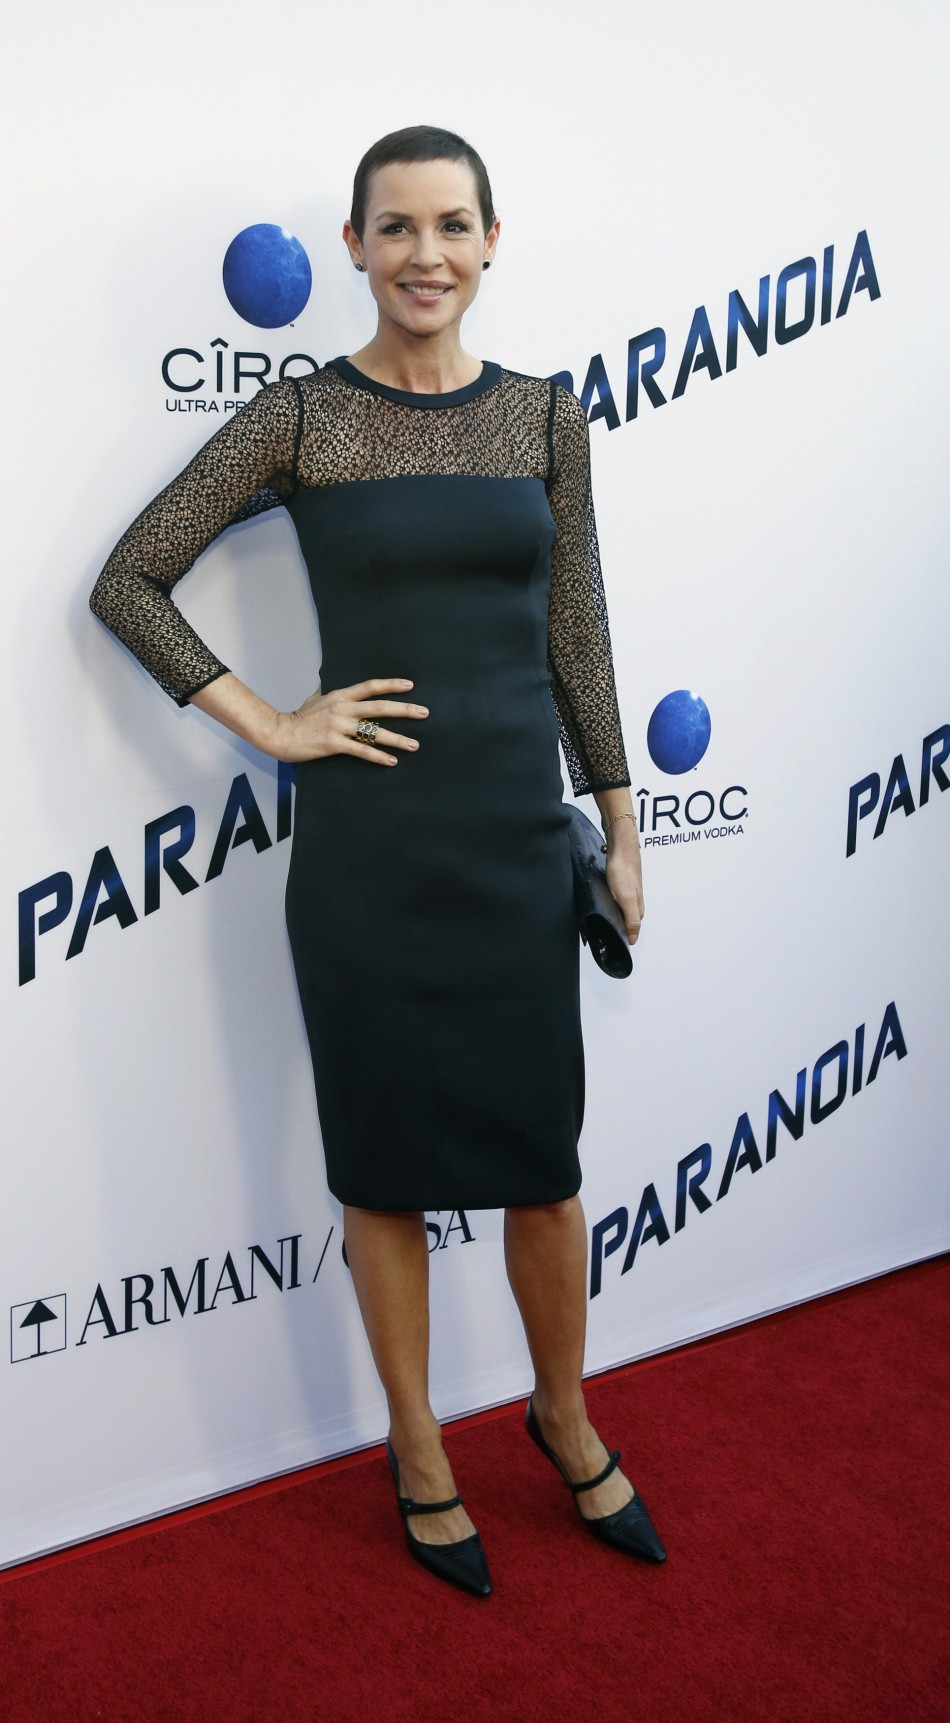 Embeth Davidtz poses at the premiere of